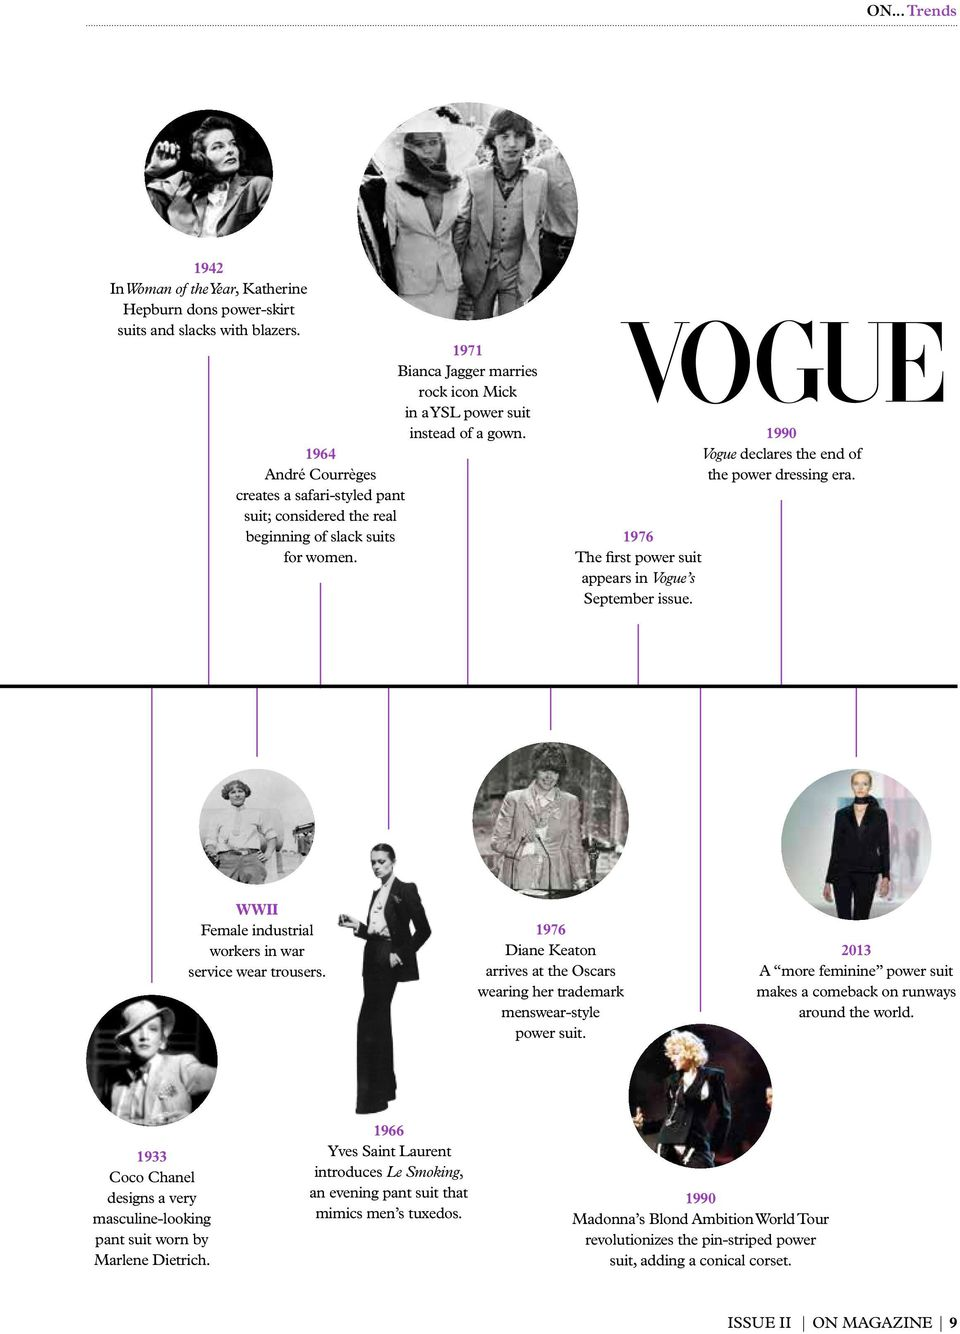 1990 Vogue declares the end of the power dressing era. WWII Female industrial workers in war service wear trousers.